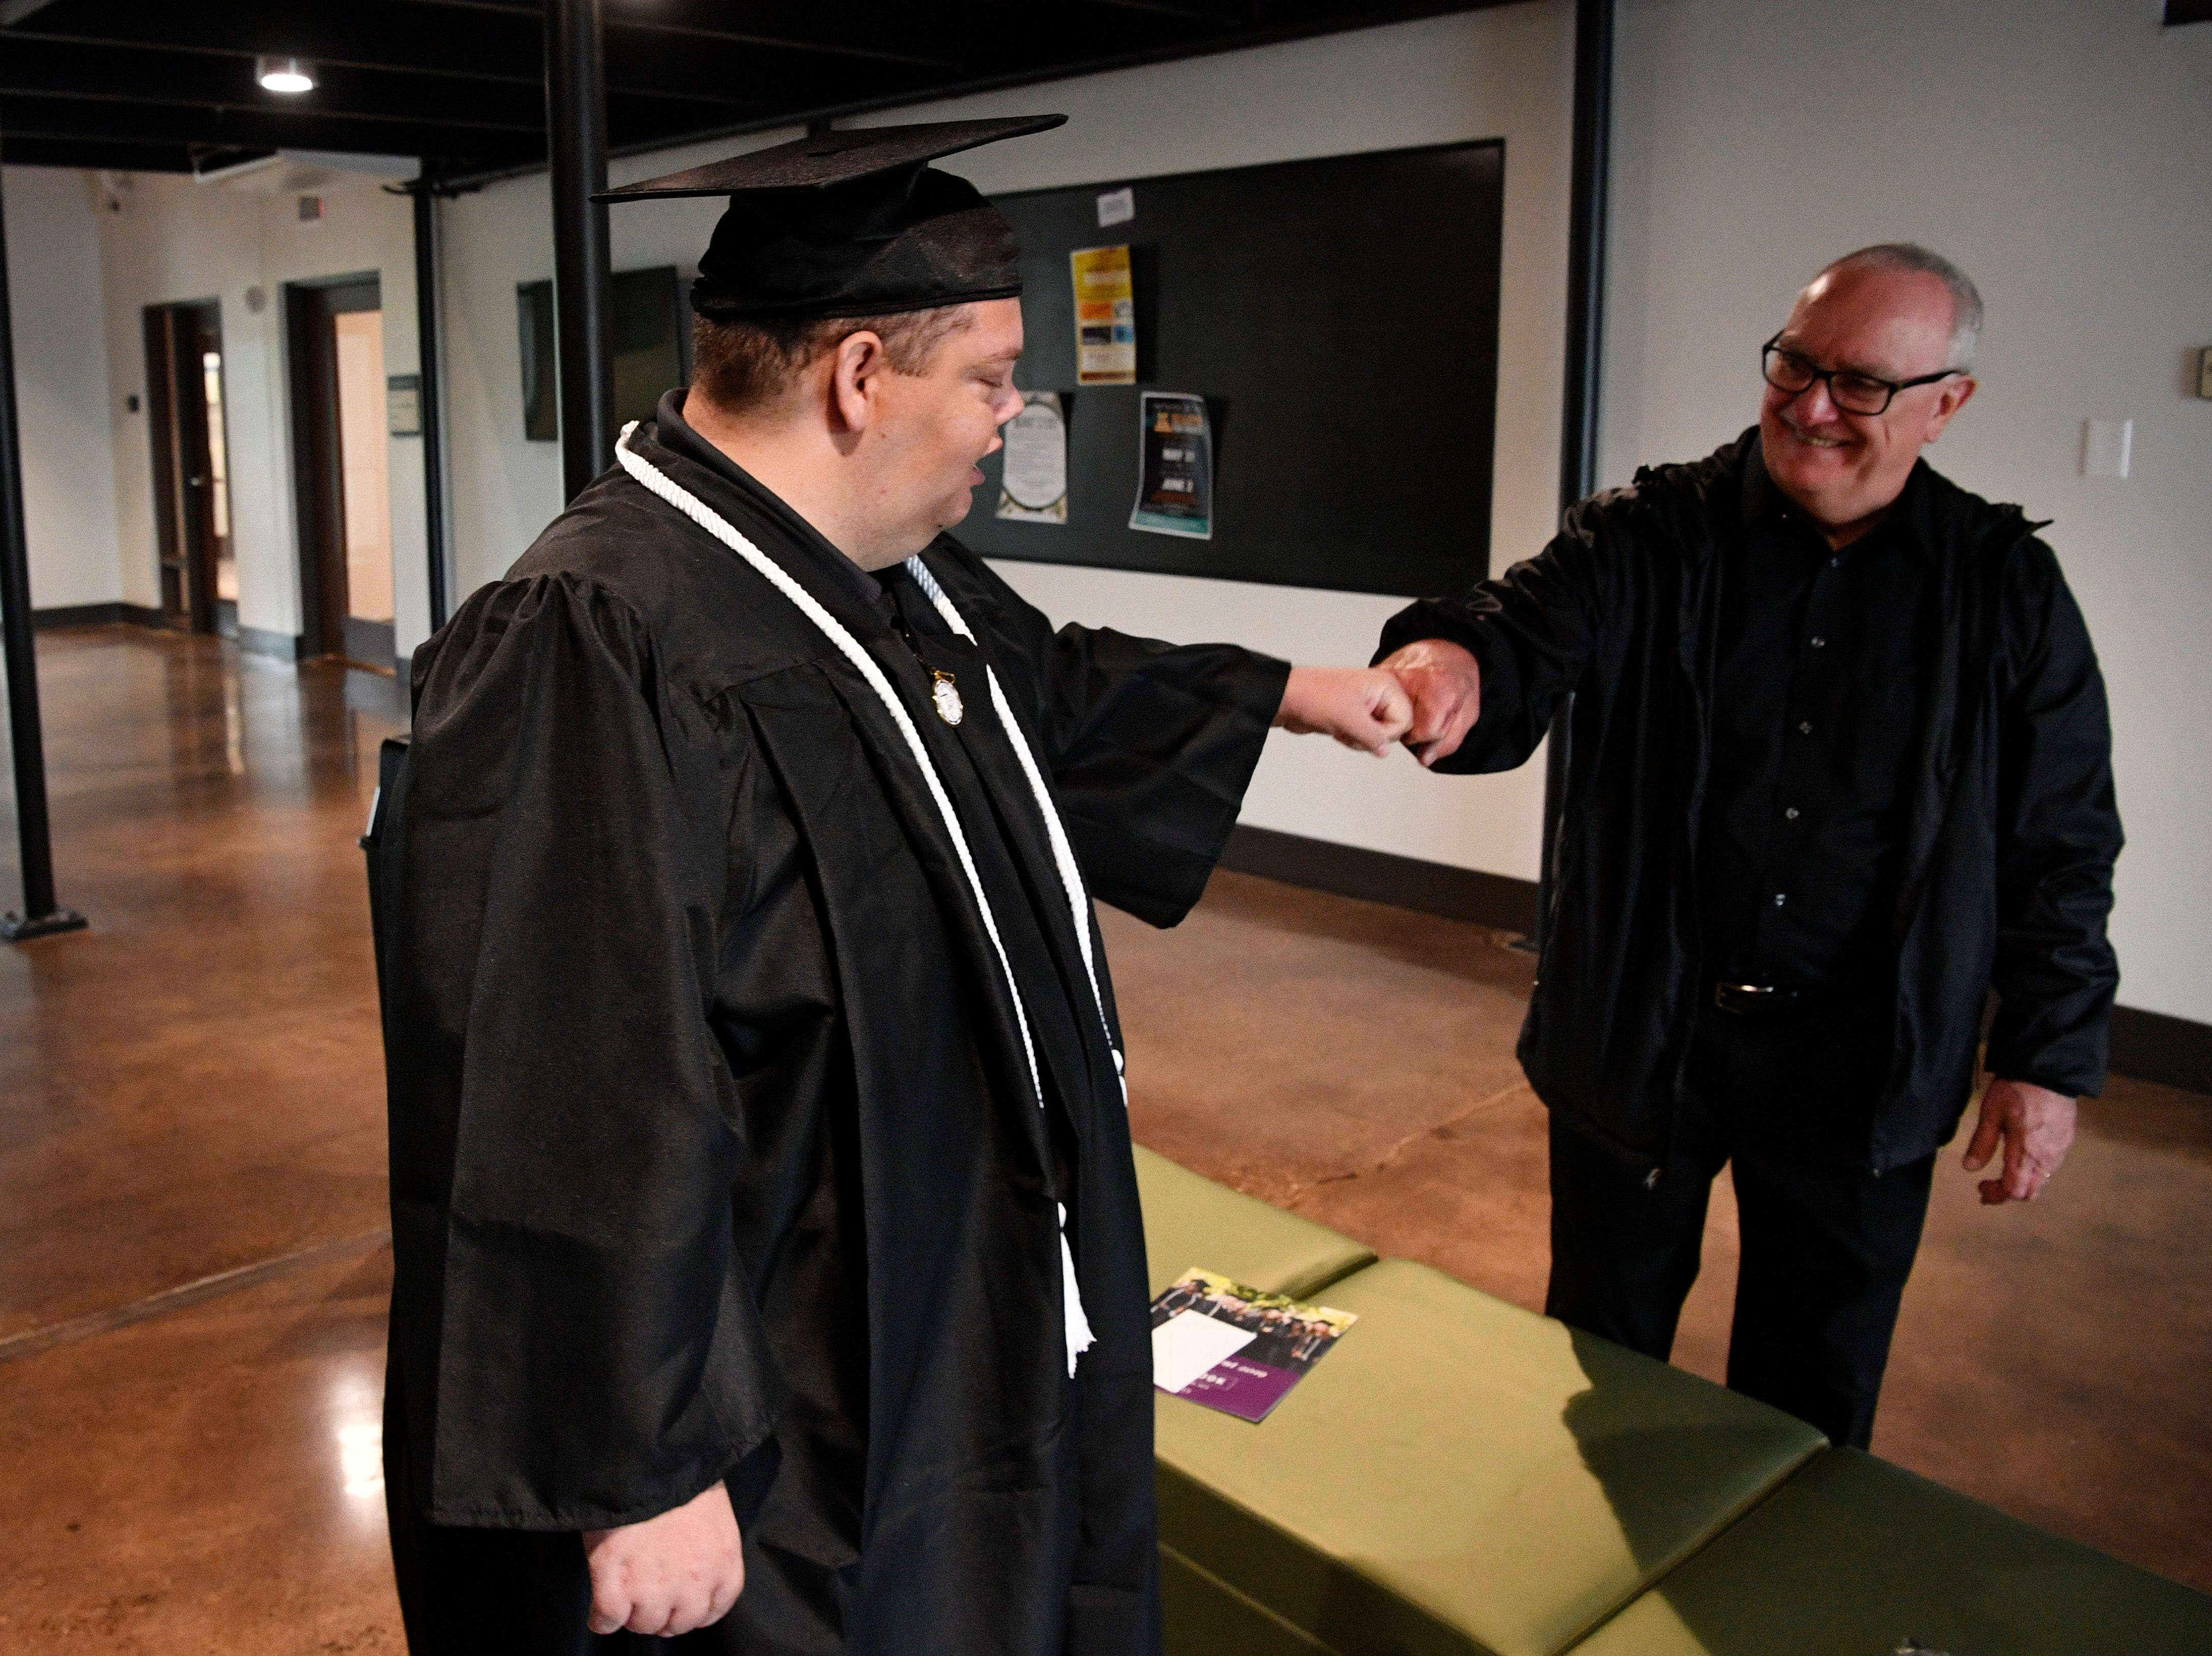 Brian Schnelle gets a fist bump from his father Jeff as he prepares to graduate from Trevecca on Saturday after 12 years as a student. He is on the autism spectrum & has pursued his degree for all those years, taking about 6 credits a semester Saturday, May 4, 2019, in Nashville, Tenn.